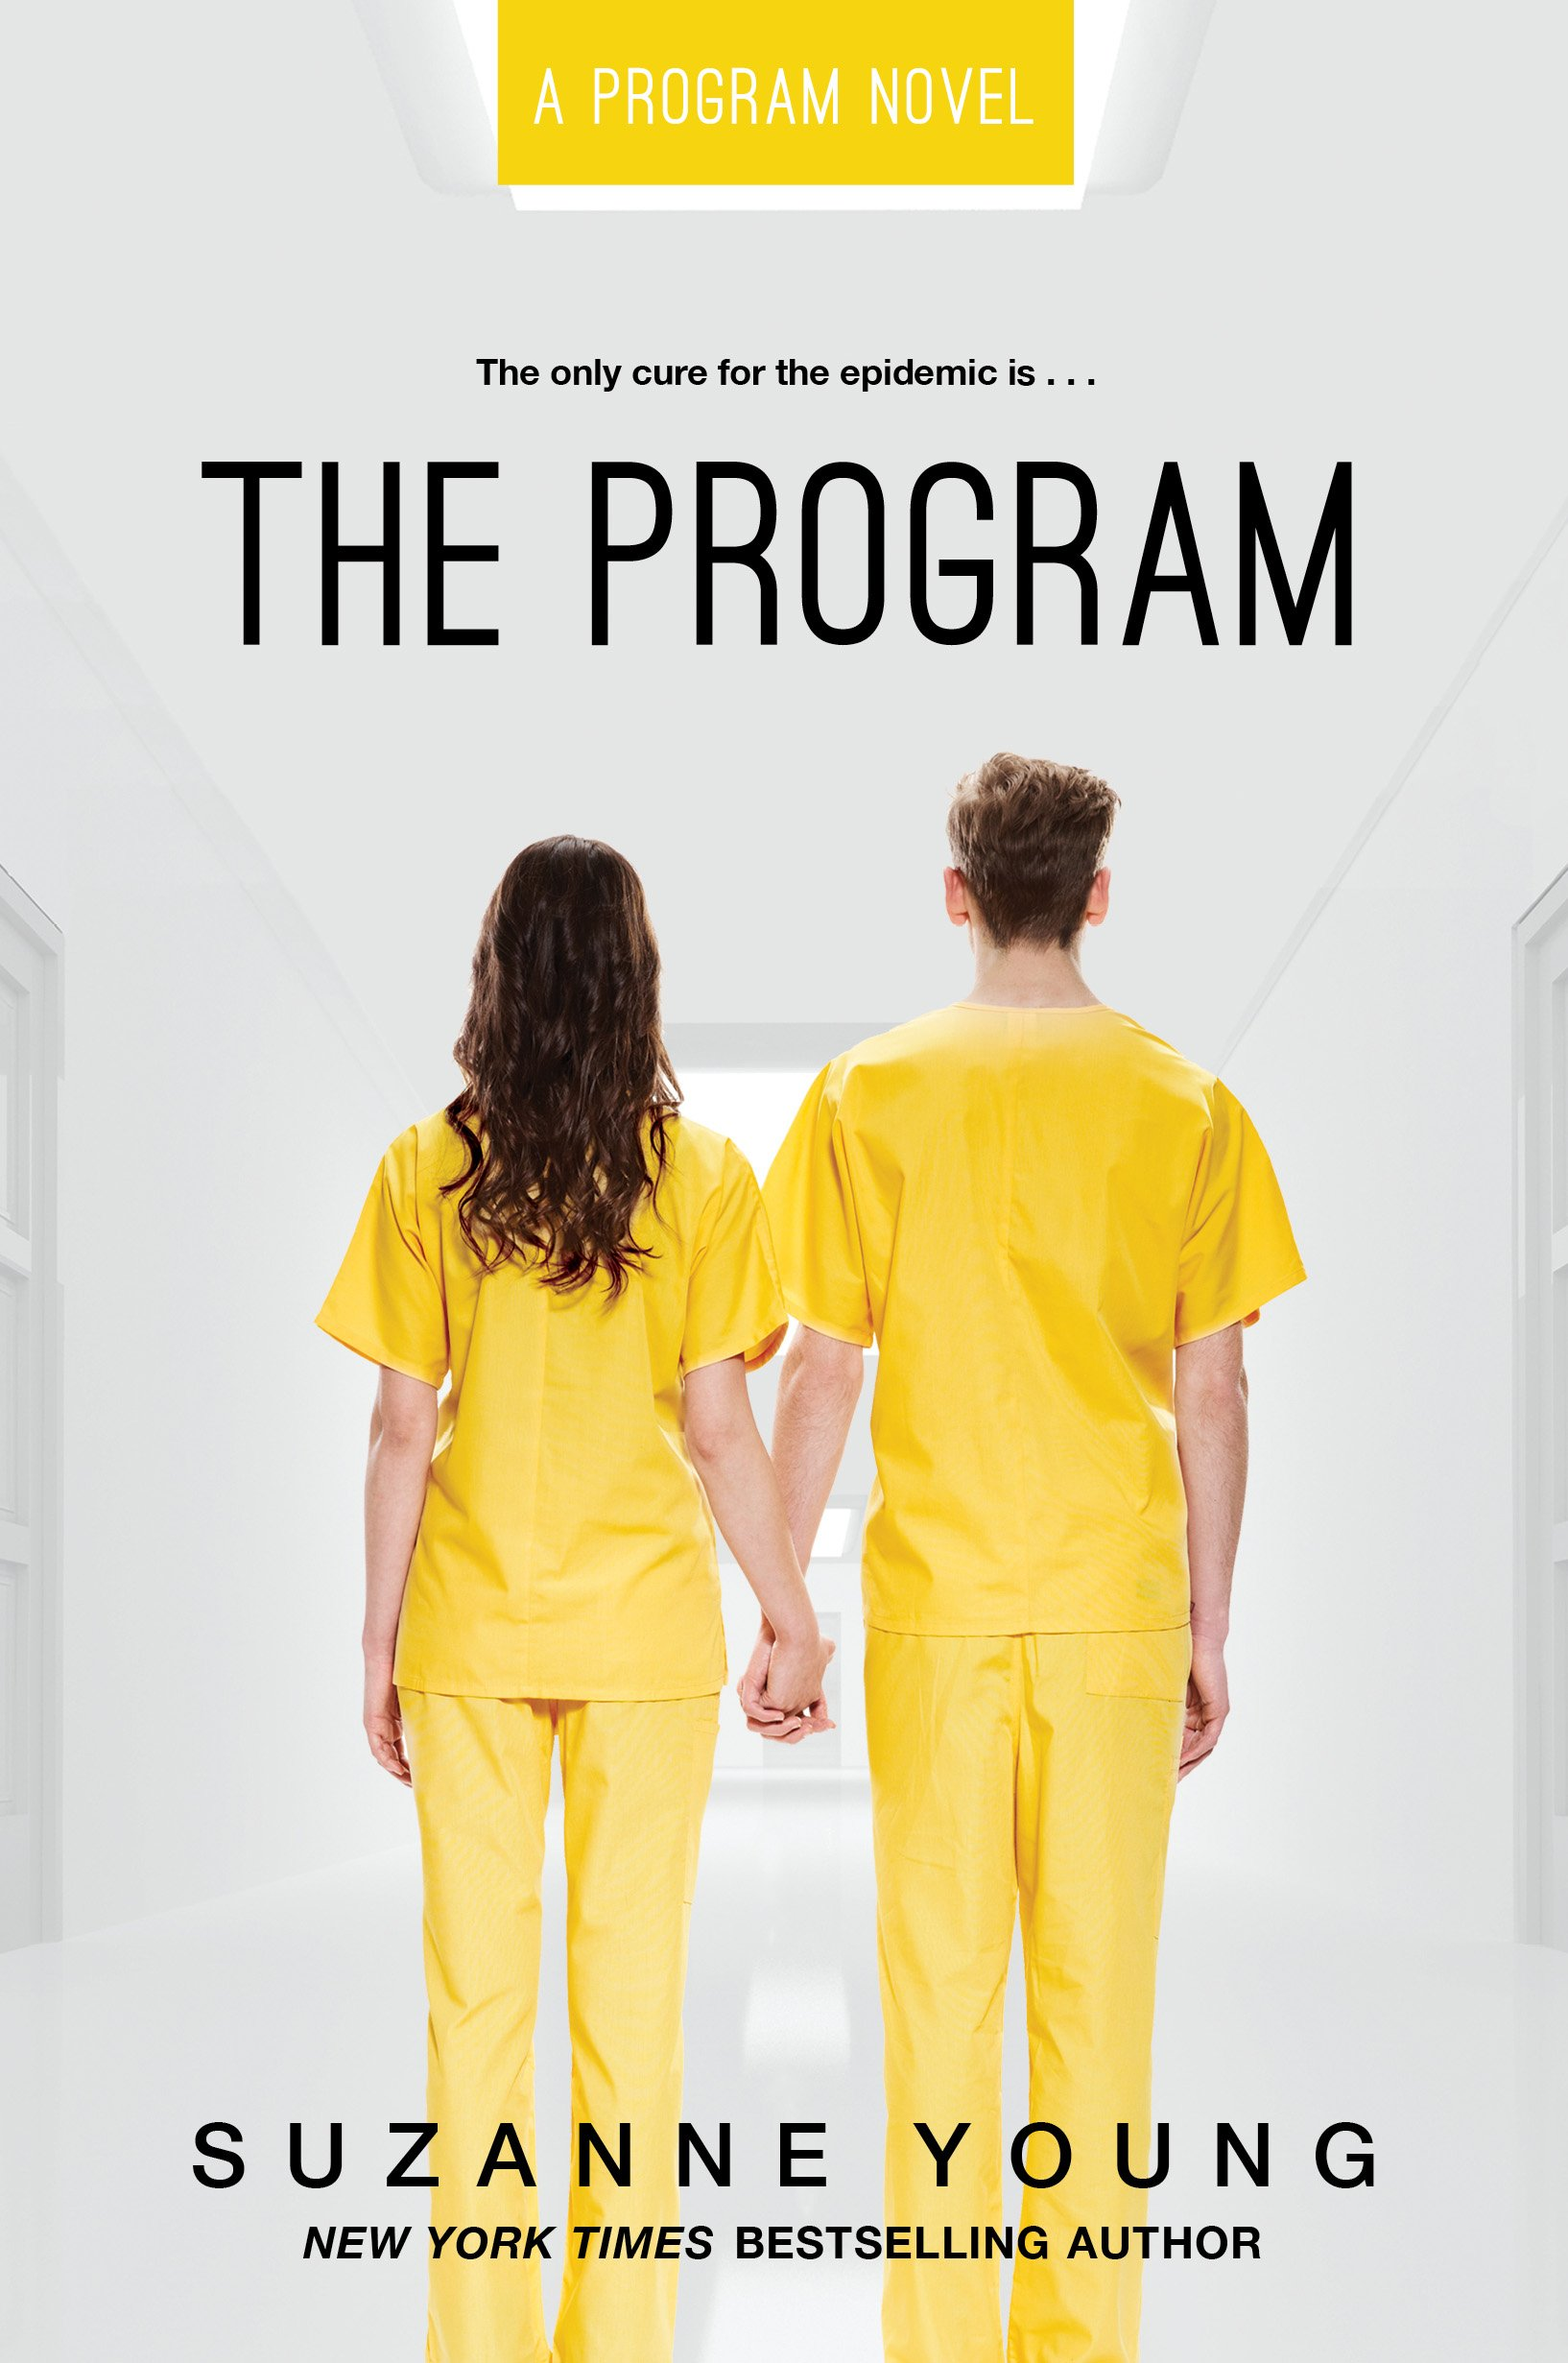 Amazon.com: The Program (1) (8601404441714): Young, Suzanne: Books